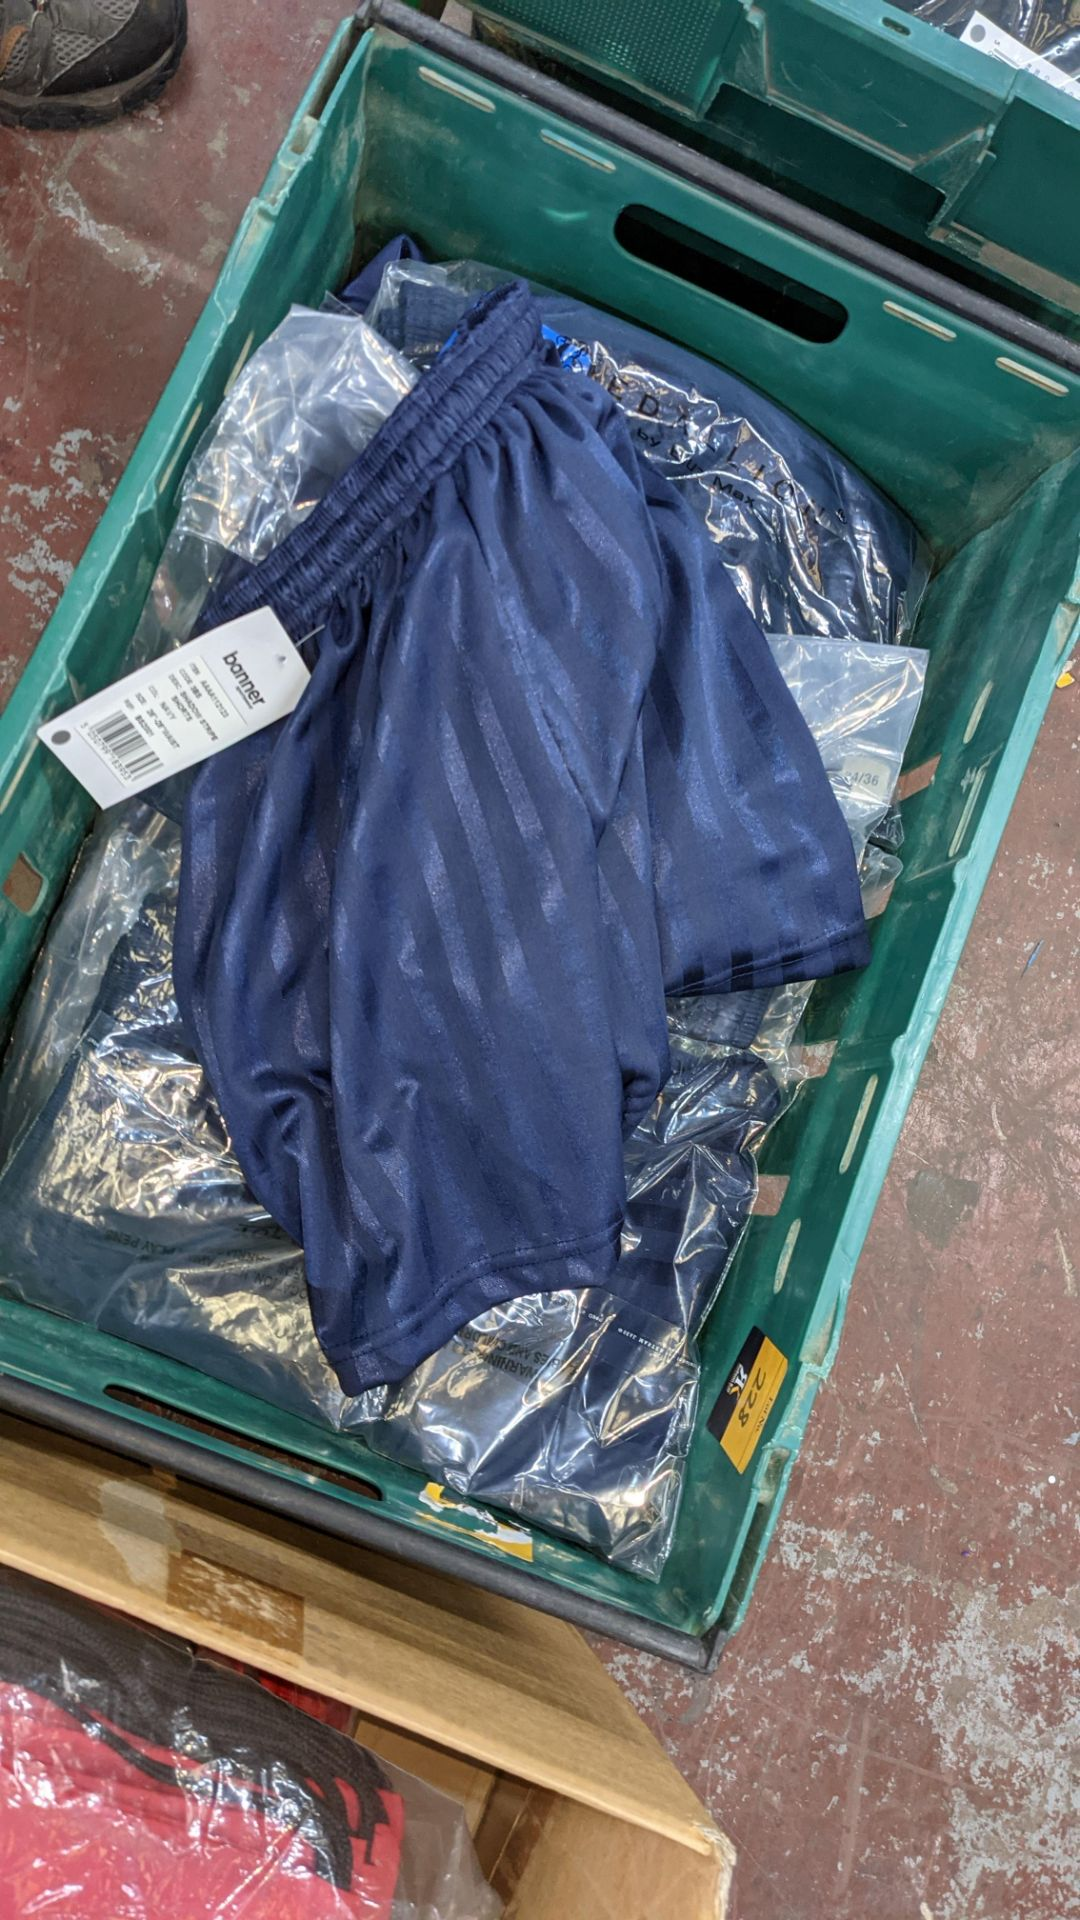 Approx 20 off Banner Sportswear navy children's shorts - the contents of 1 crate. NB crates exclude - Image 4 of 4